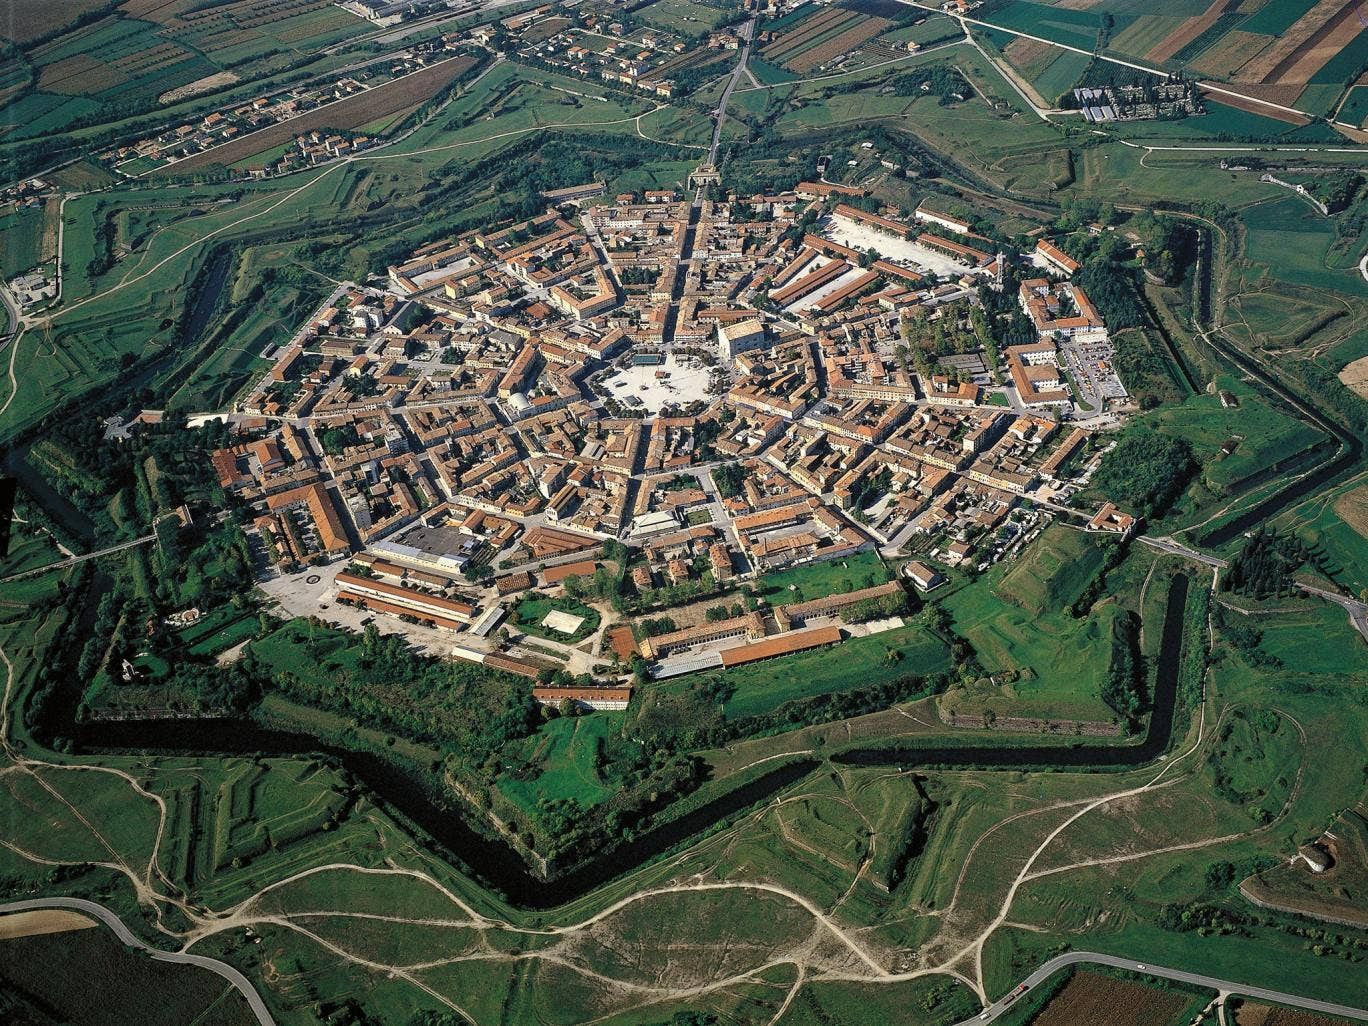 The Italian city of Palmanova was founded as an idealistic citadel in 1593 – but nobody wanted to live there